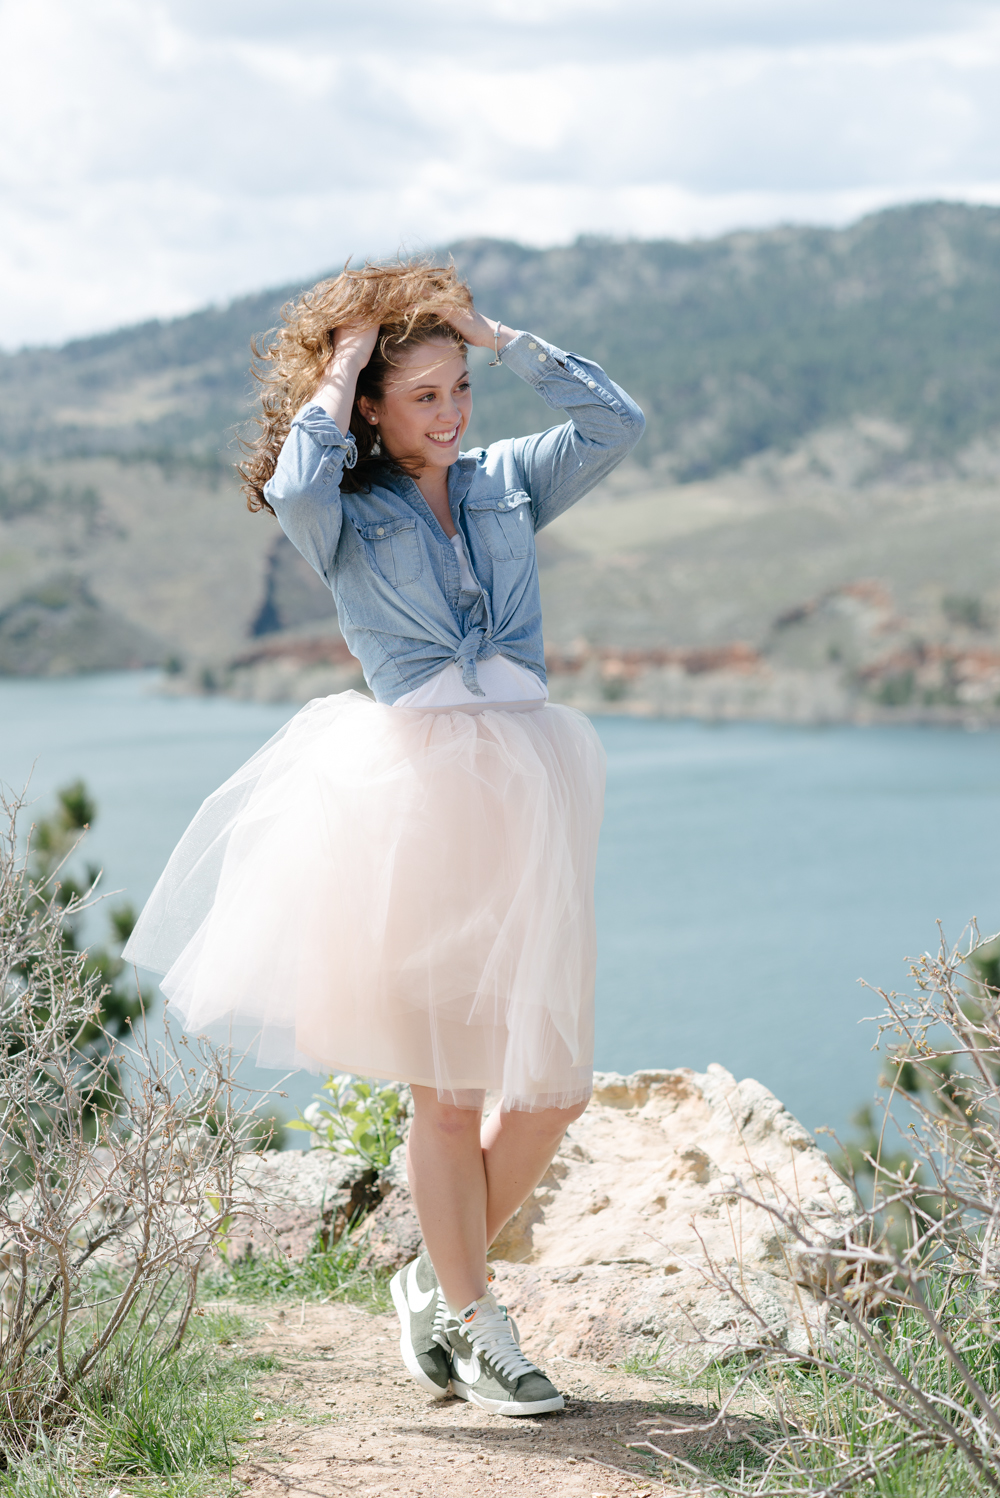 Shop our Signature Tulle Skirt in Blush to get this look.  Get this look by pairing it with the items below.